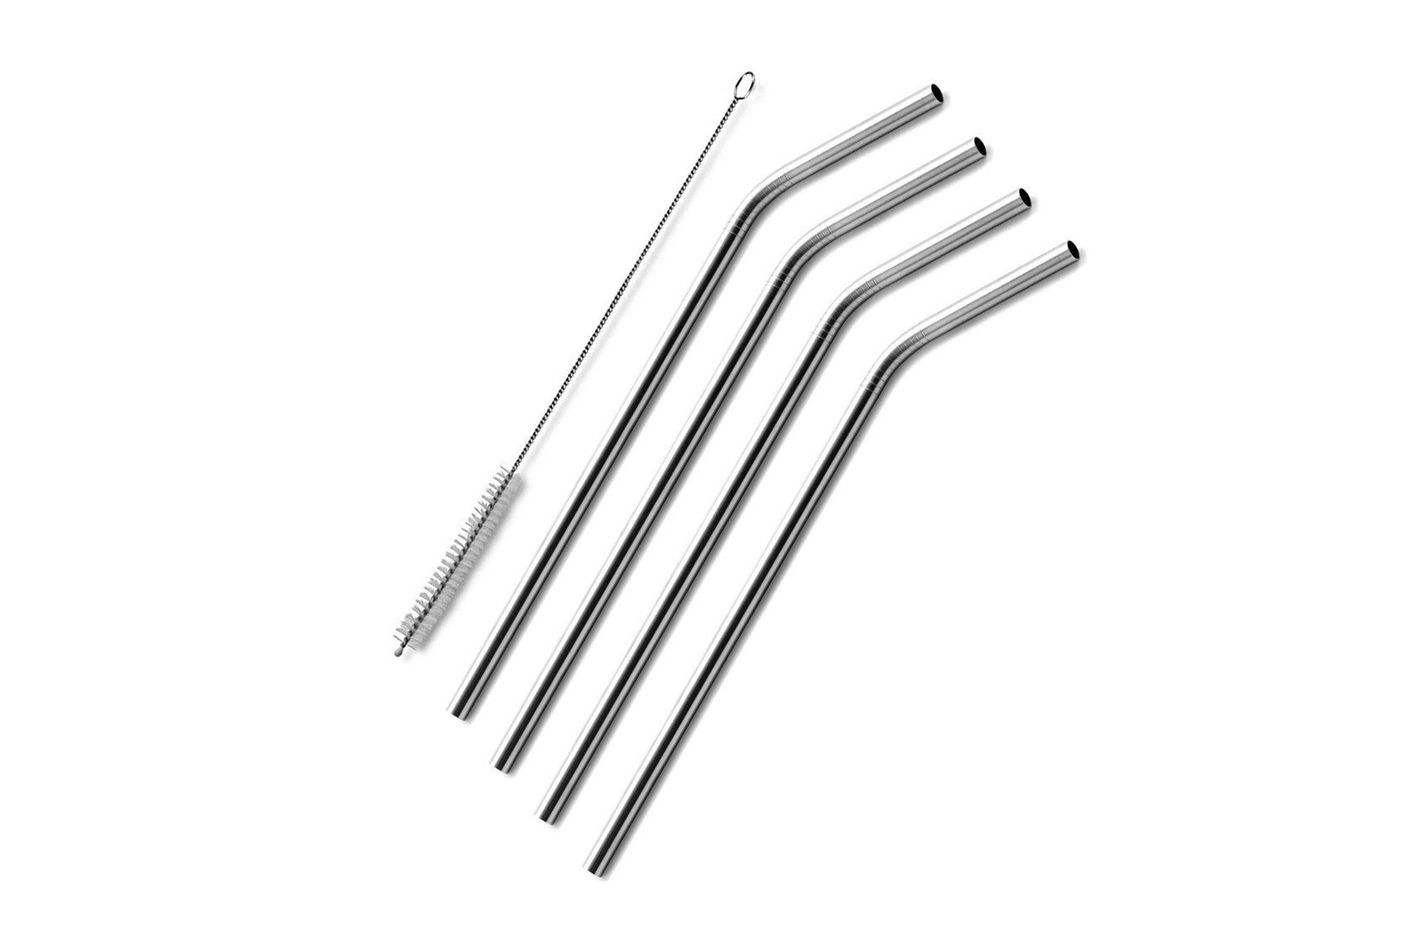 Stainless Steel Drinking Straws, Set of 4